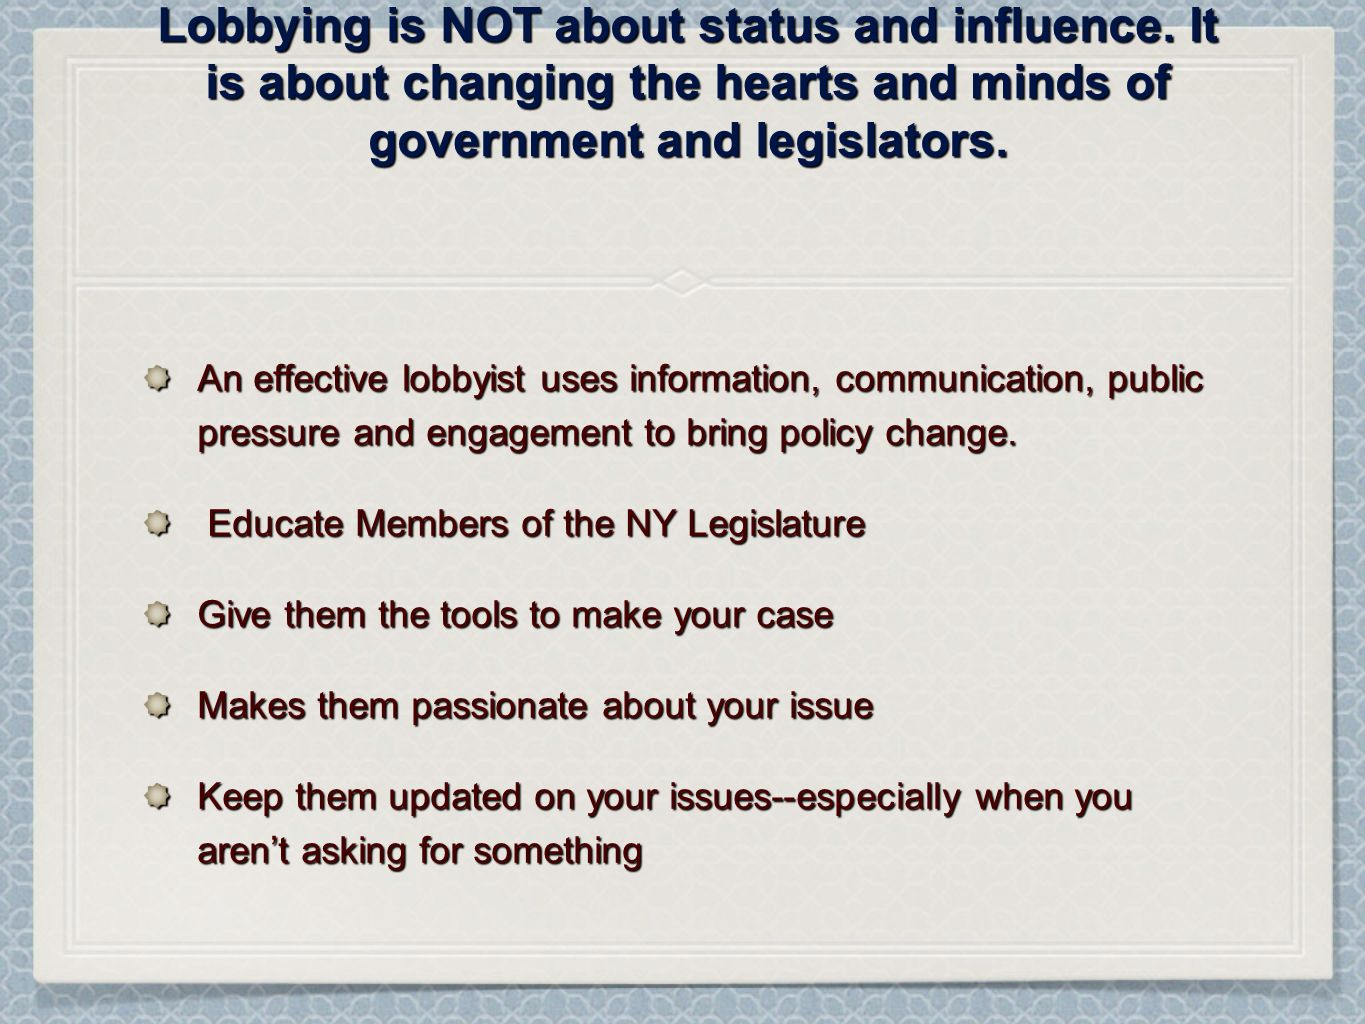 Lobbying is NOT about status and influence.